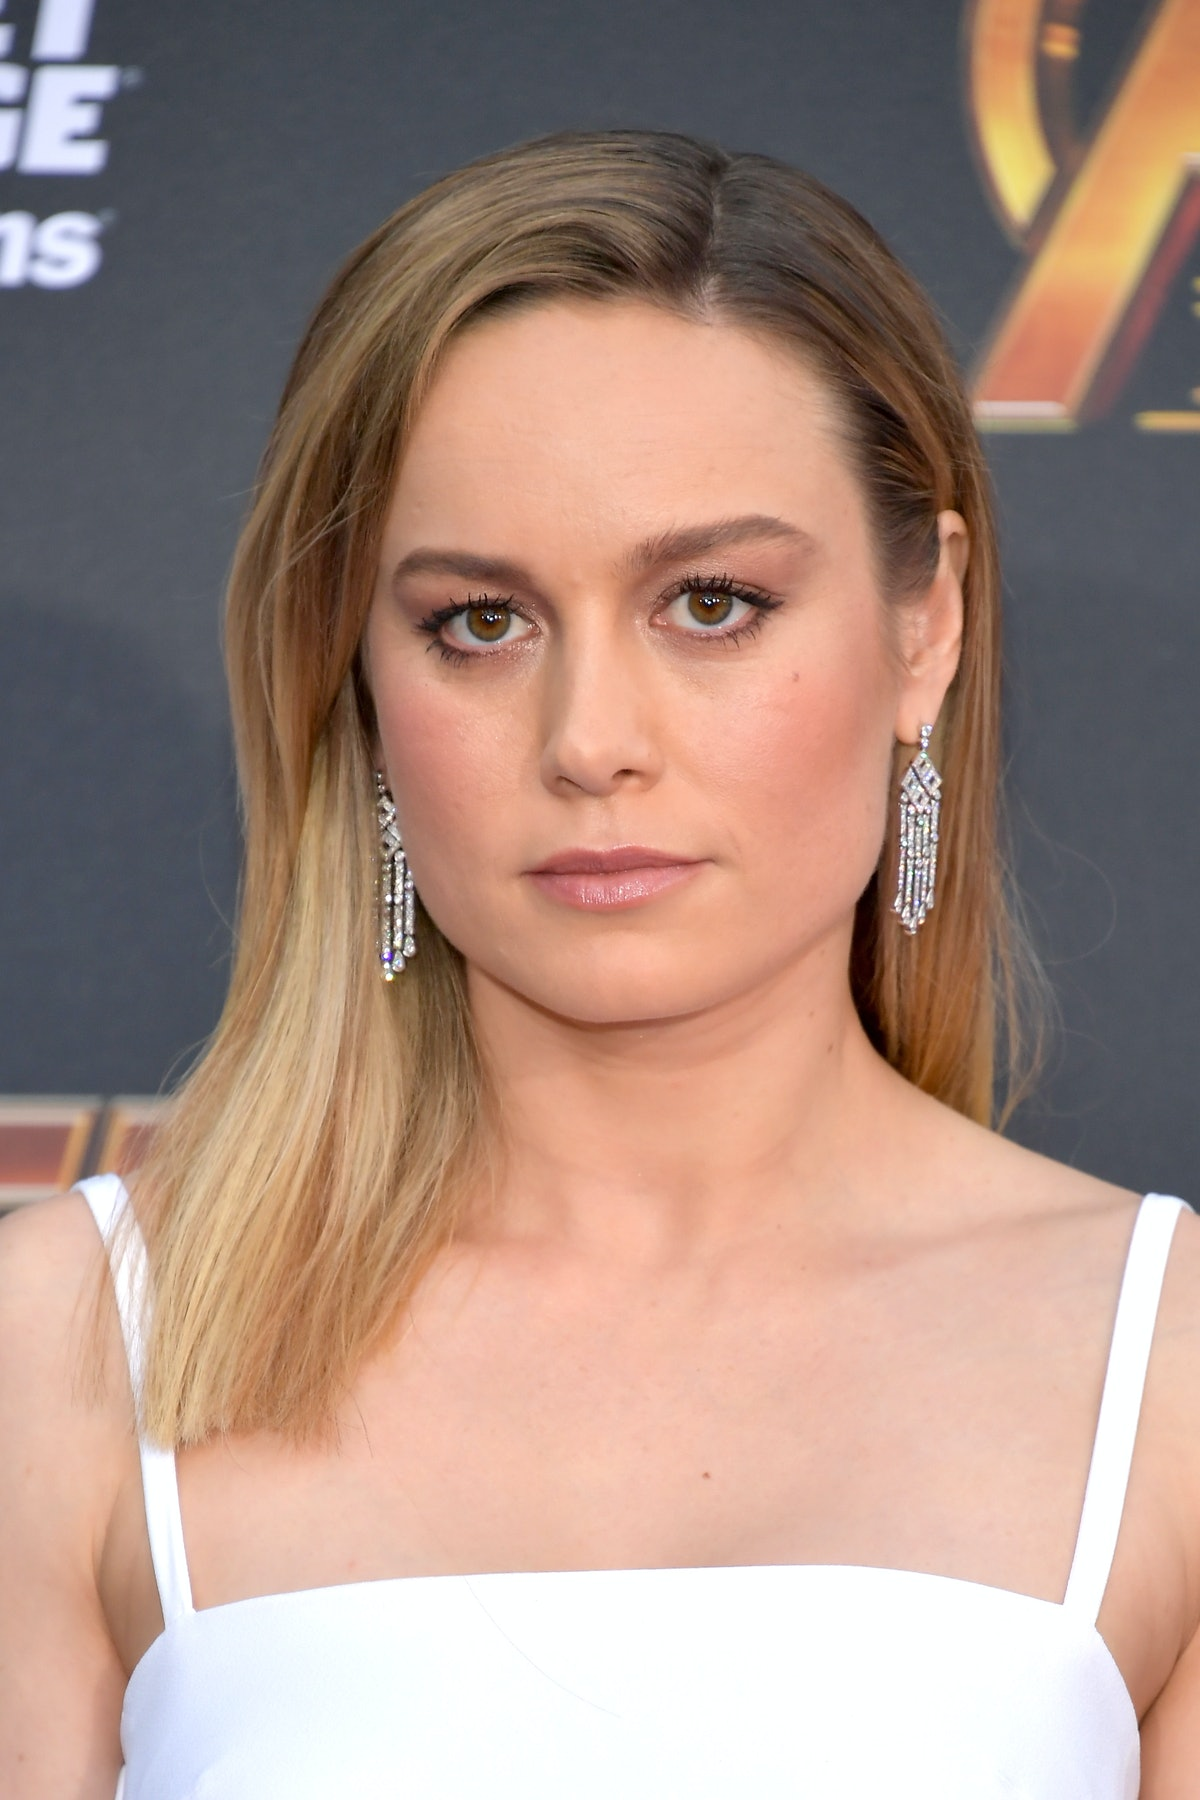 Is Captain Marvel Stronger Than Thanos? She's A Real Match For The 'Infinity War' Supervillain